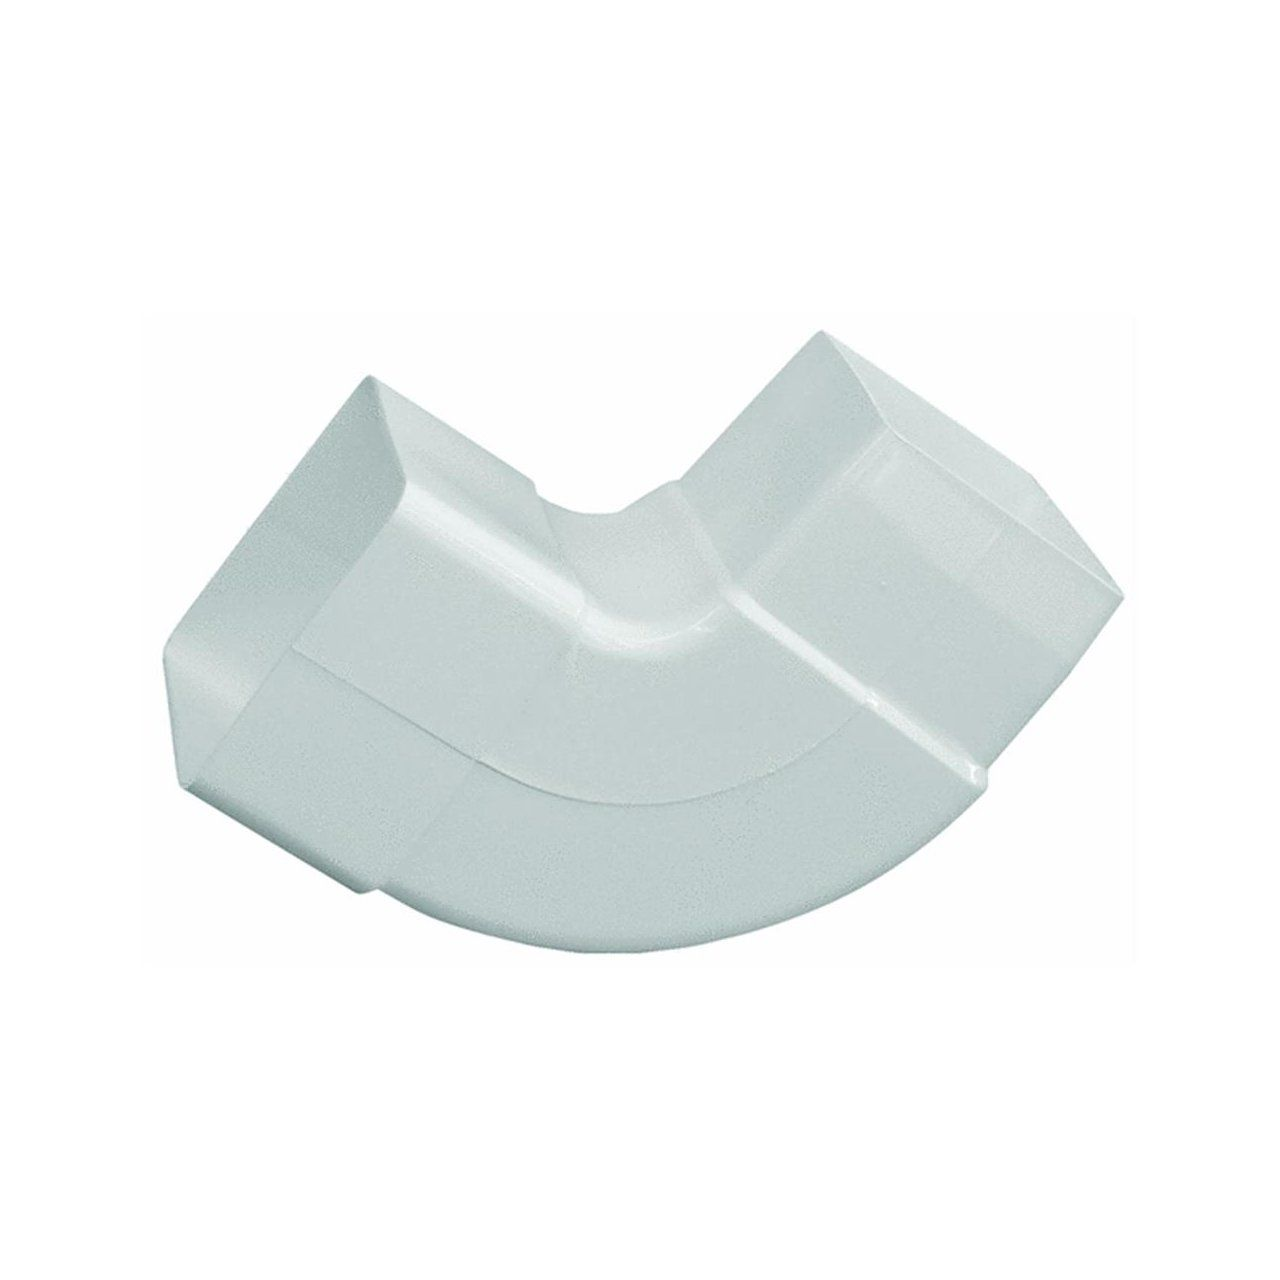 Genova Rw209 White 90 Deg Dnspt Elbow Check This Awesome Product By Going To The Link At The Image Genova Downspout Gutters